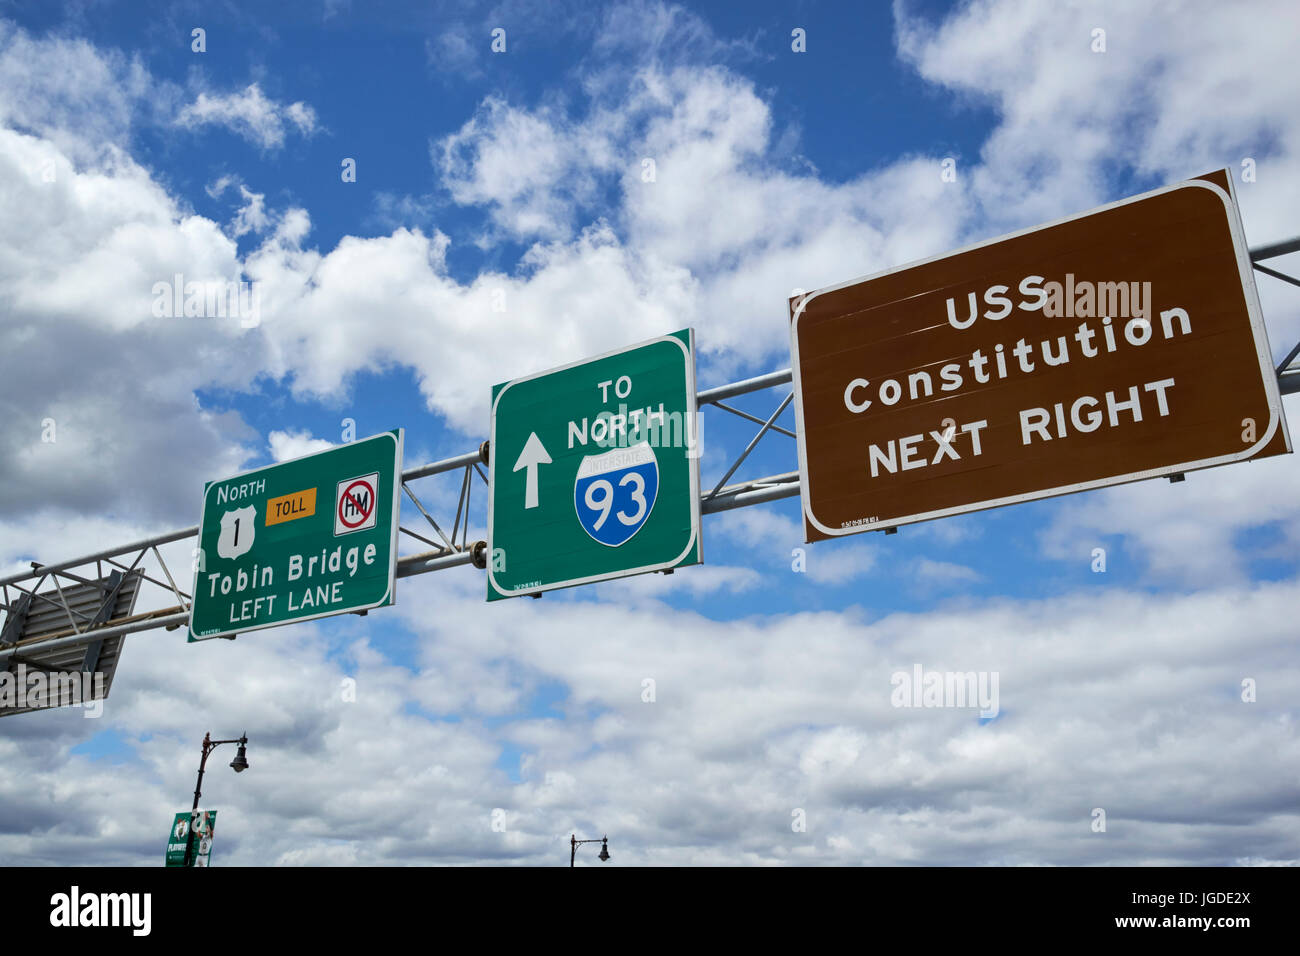 highway signs against blue cloudy sky for north us 1 tobin bridge north interstate 93 and uss constitution Boston - Stock Image